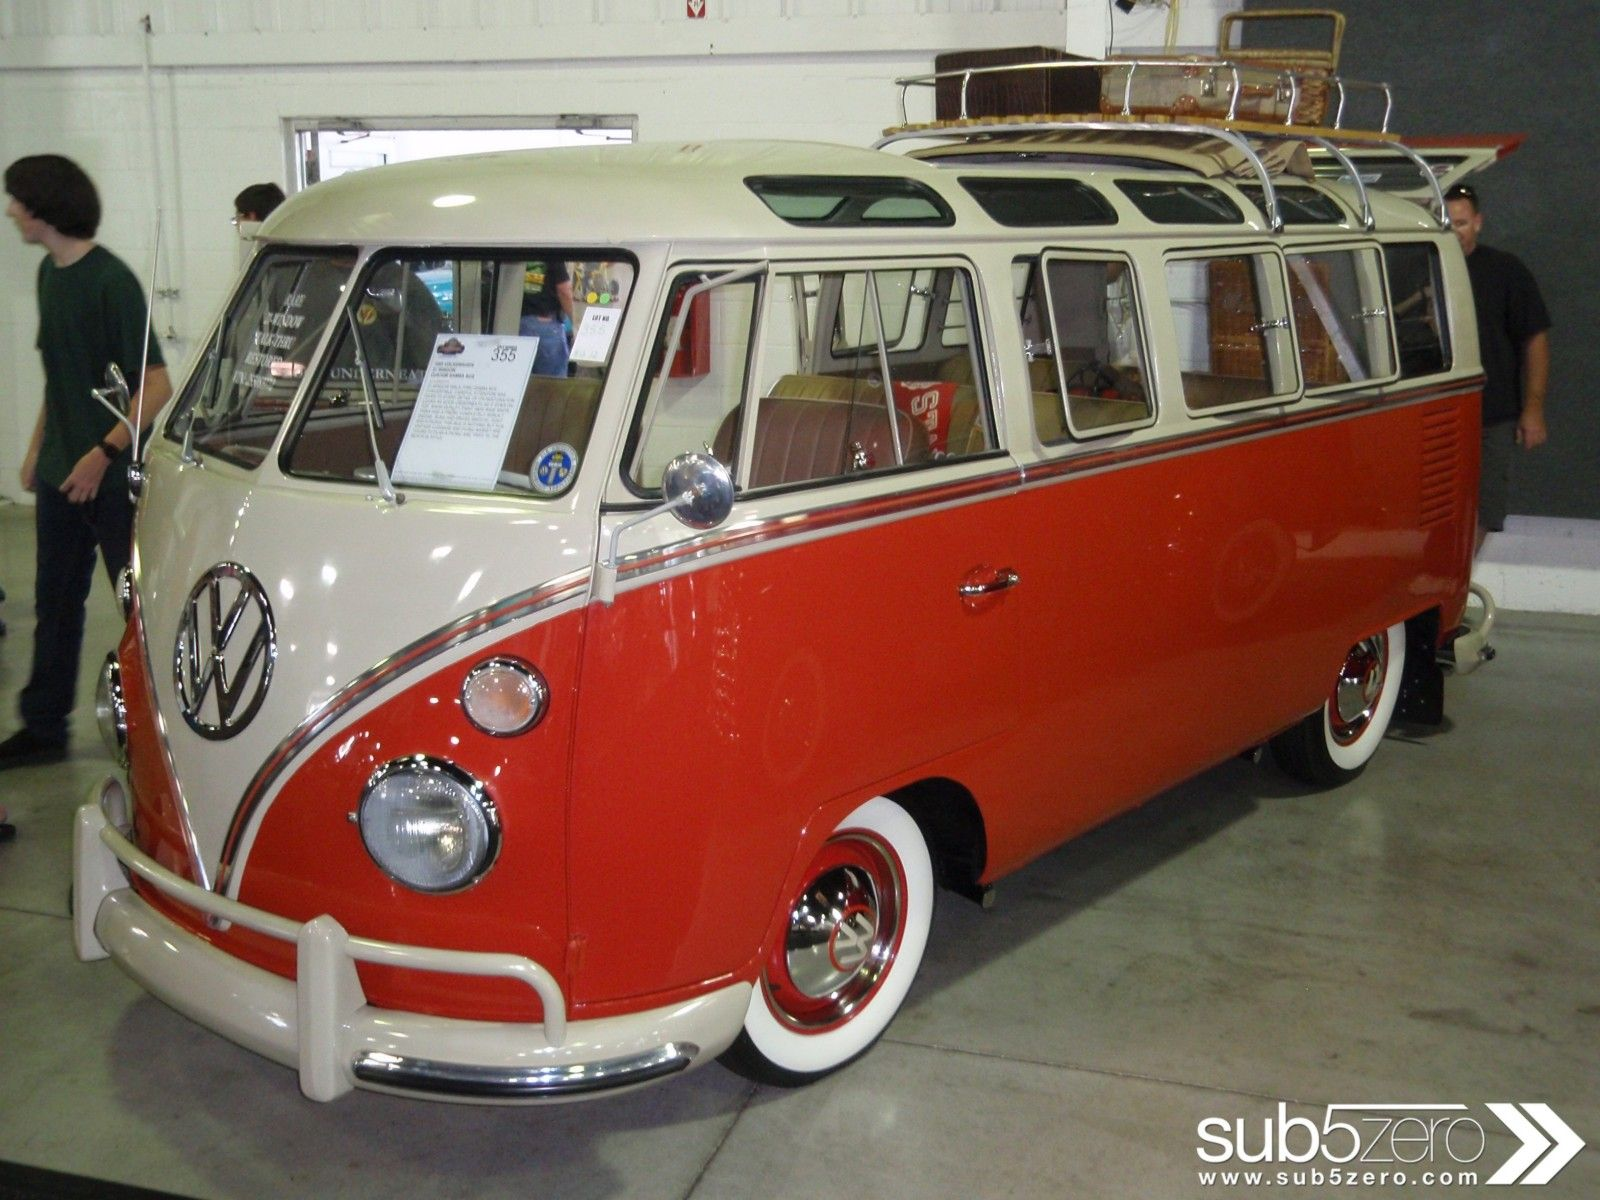 1965 vw 21 window samba bus sold at auction for 75 000 for 1965 vw 21 window bus